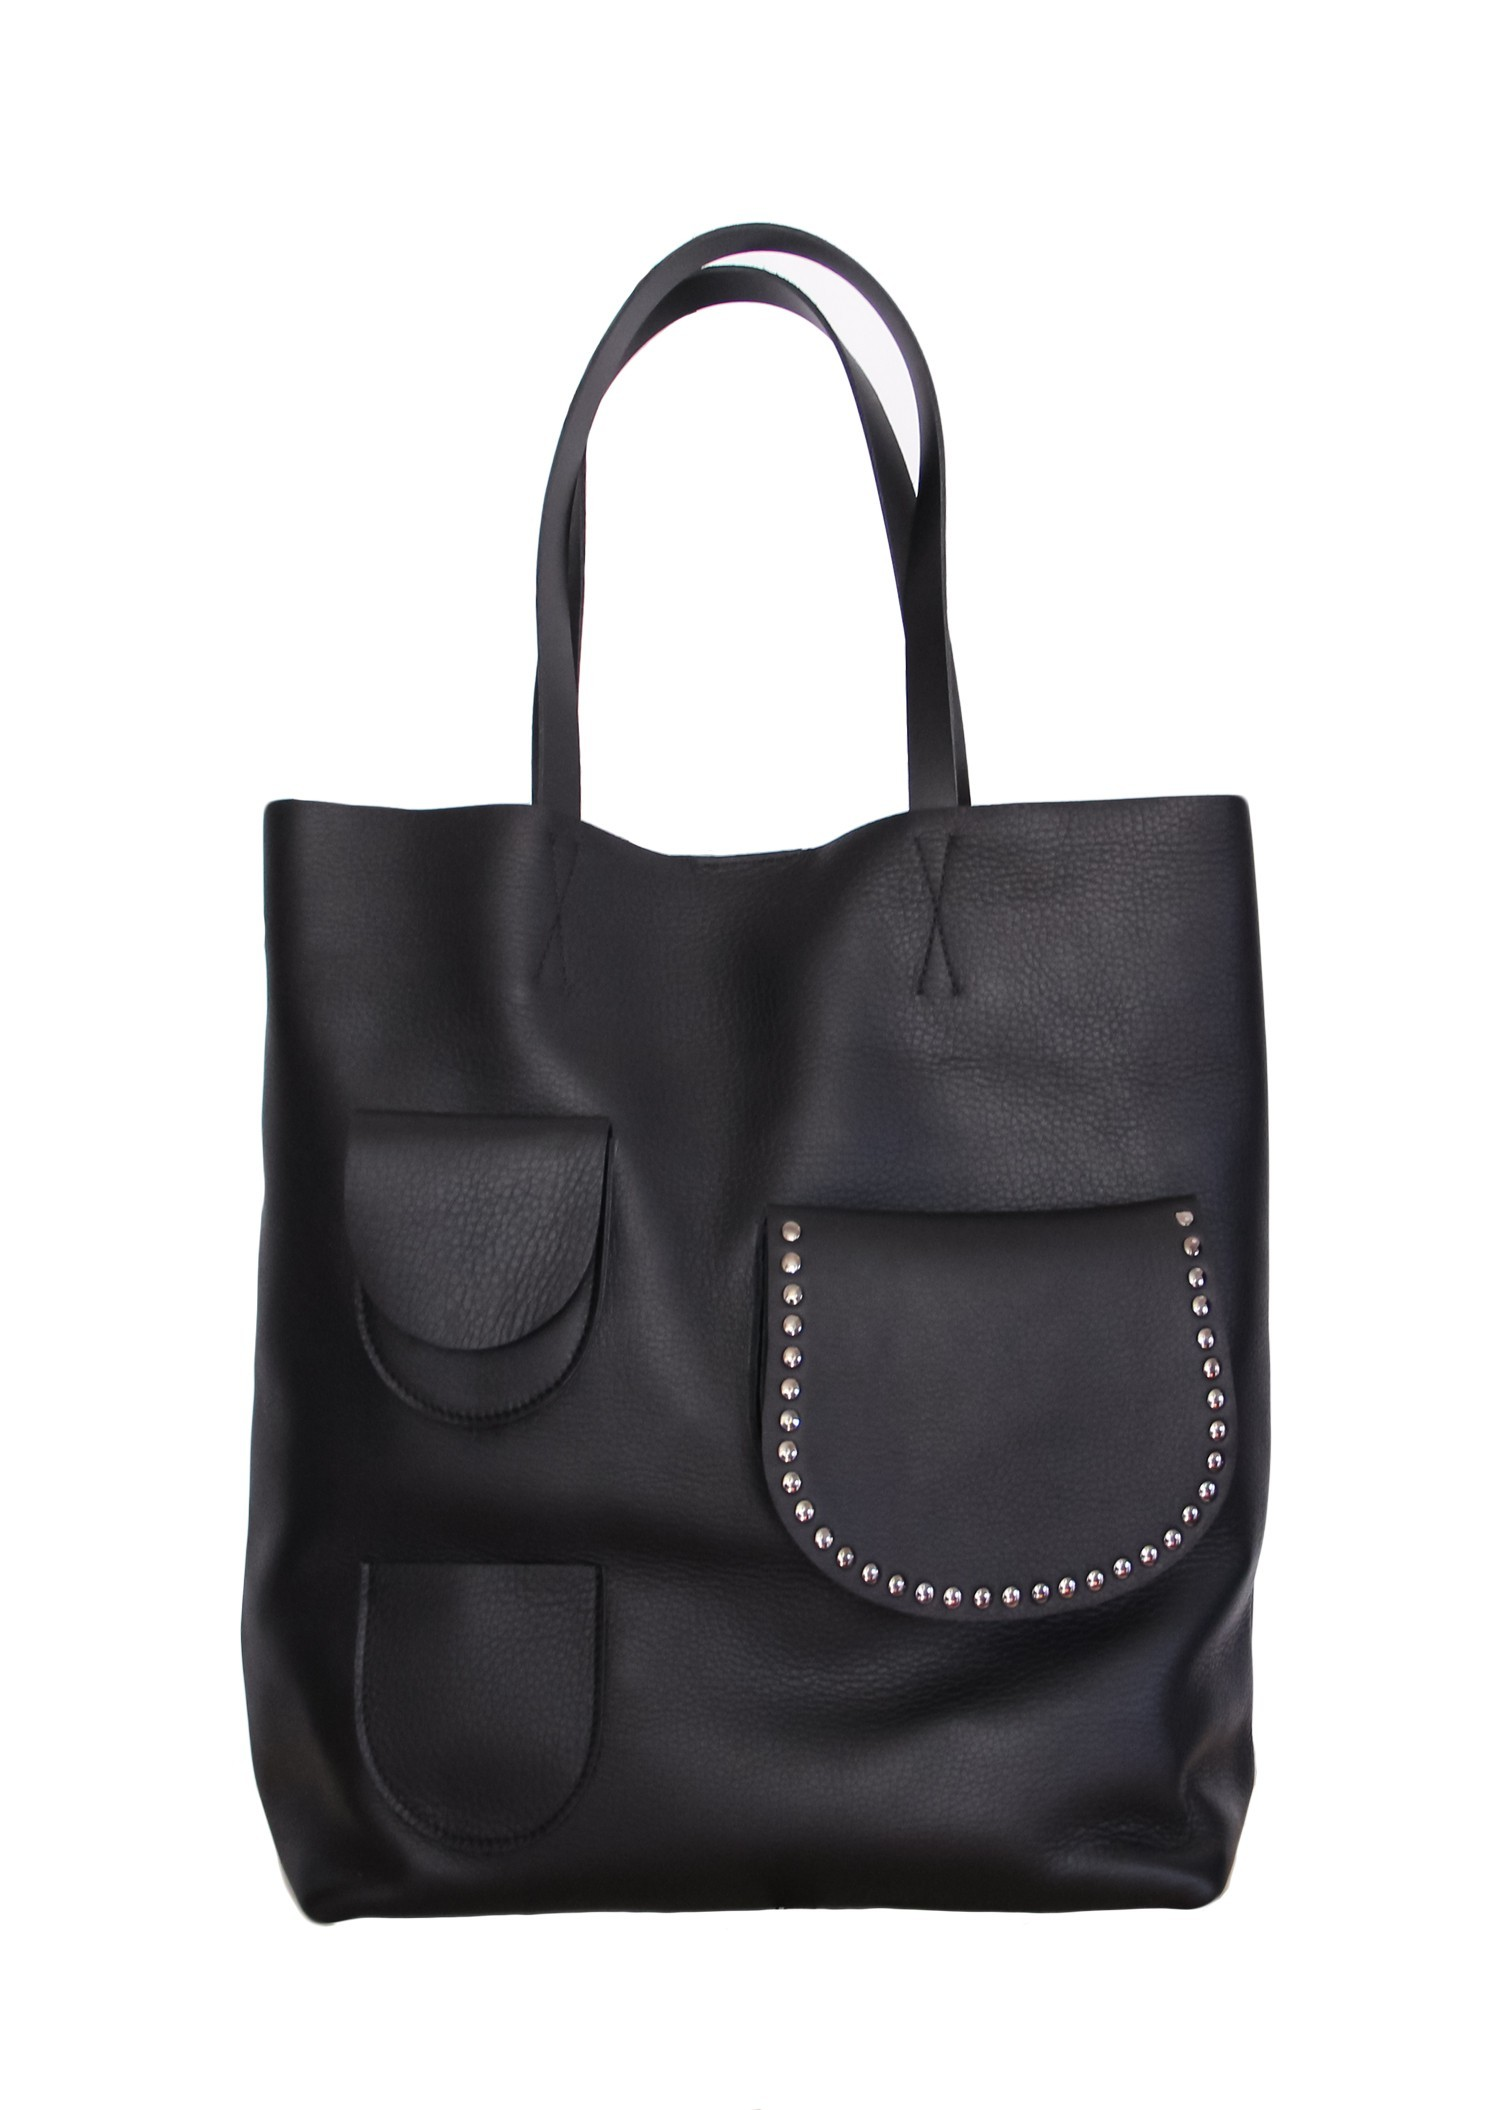 Torba skórzana Premium Sugar Tote Man in Black - 96220